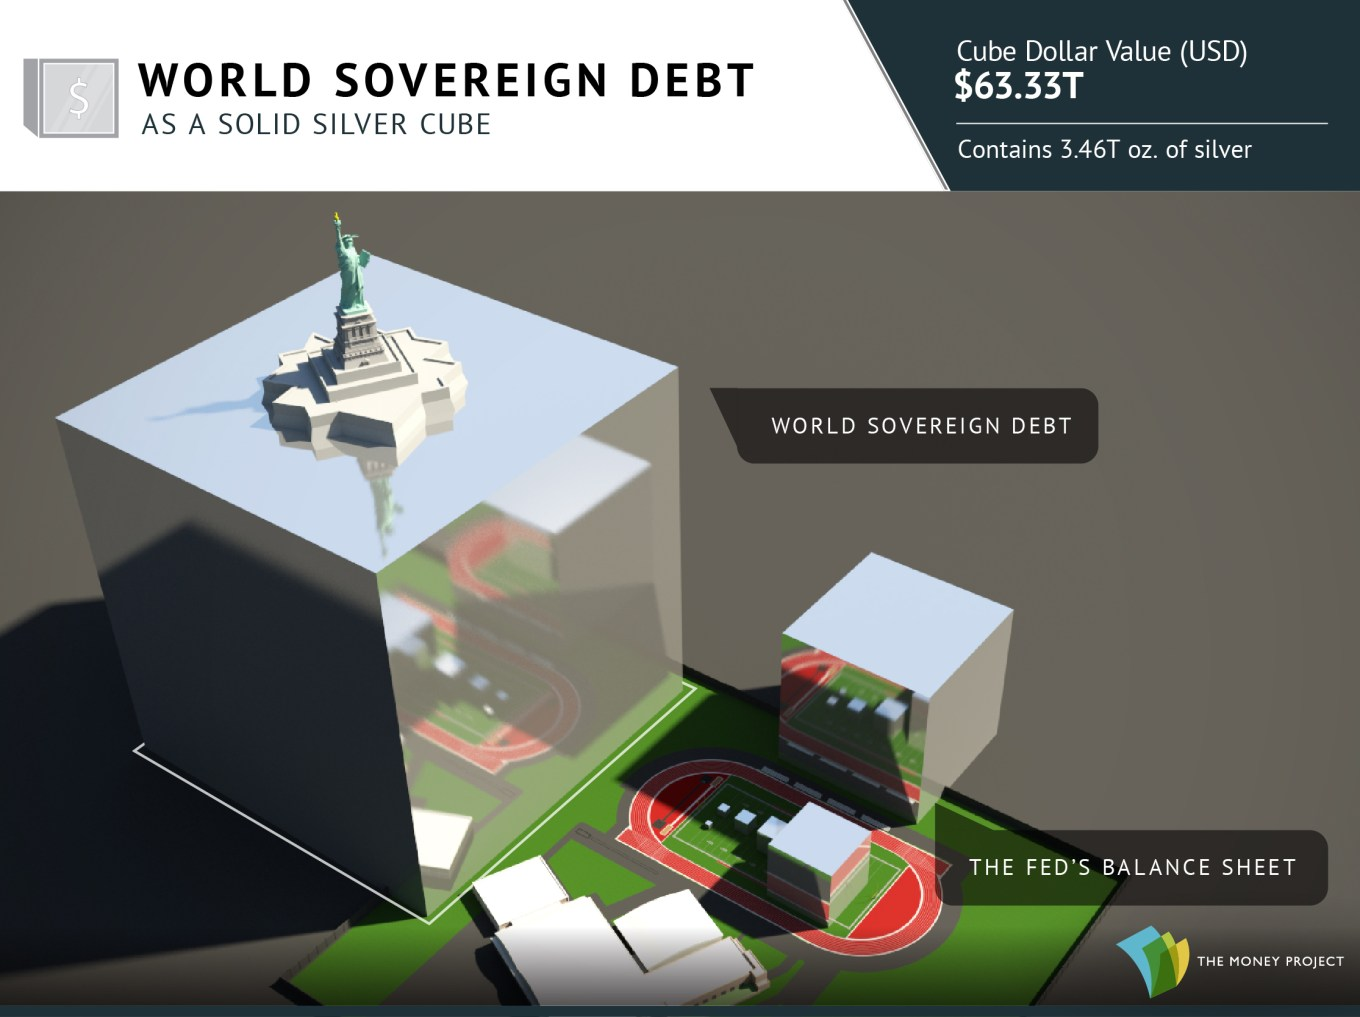 All Sovereign Debt Visualized as a Gold Cube